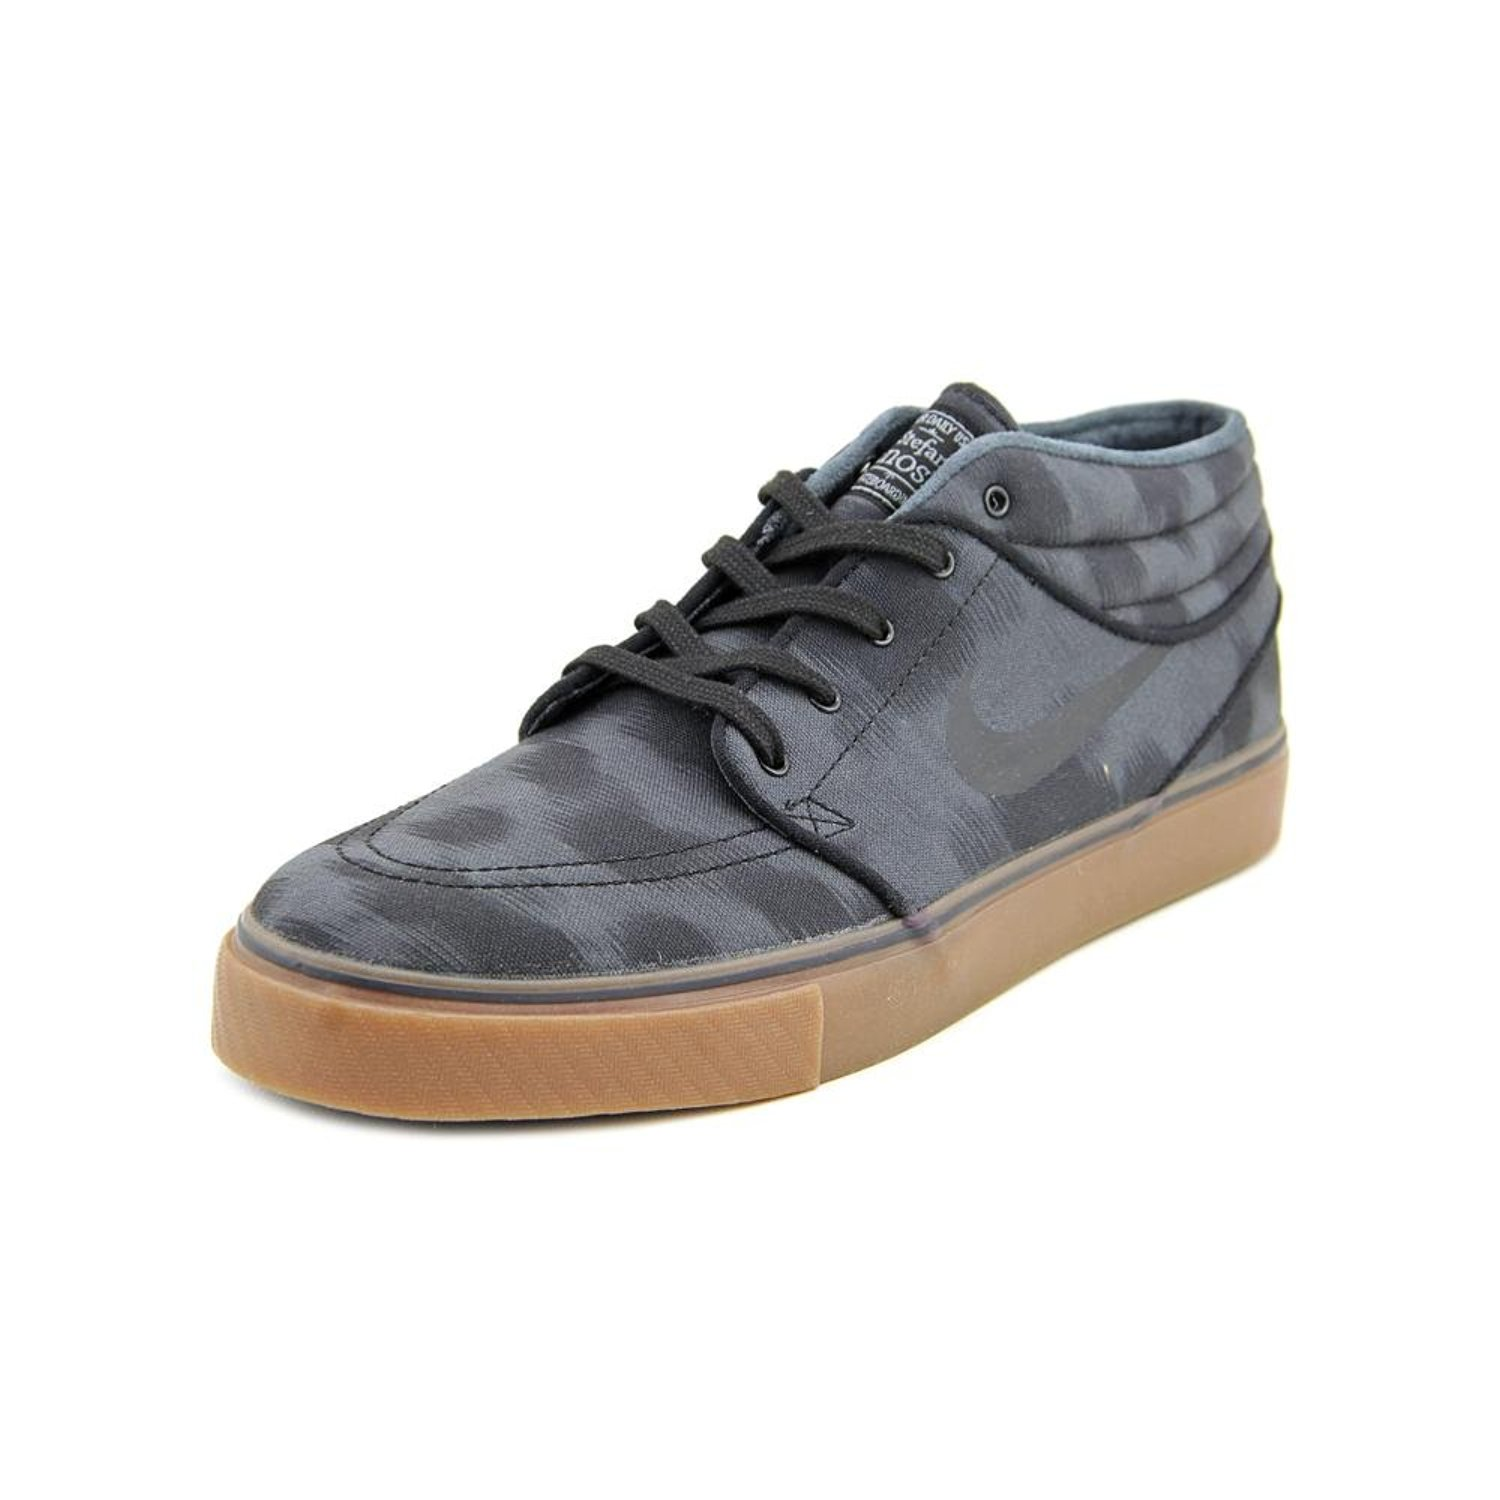 3c15c743770b Get Quotations · Nike Zoom Stefan Janoski Mid Men s Skateboarding Shoes